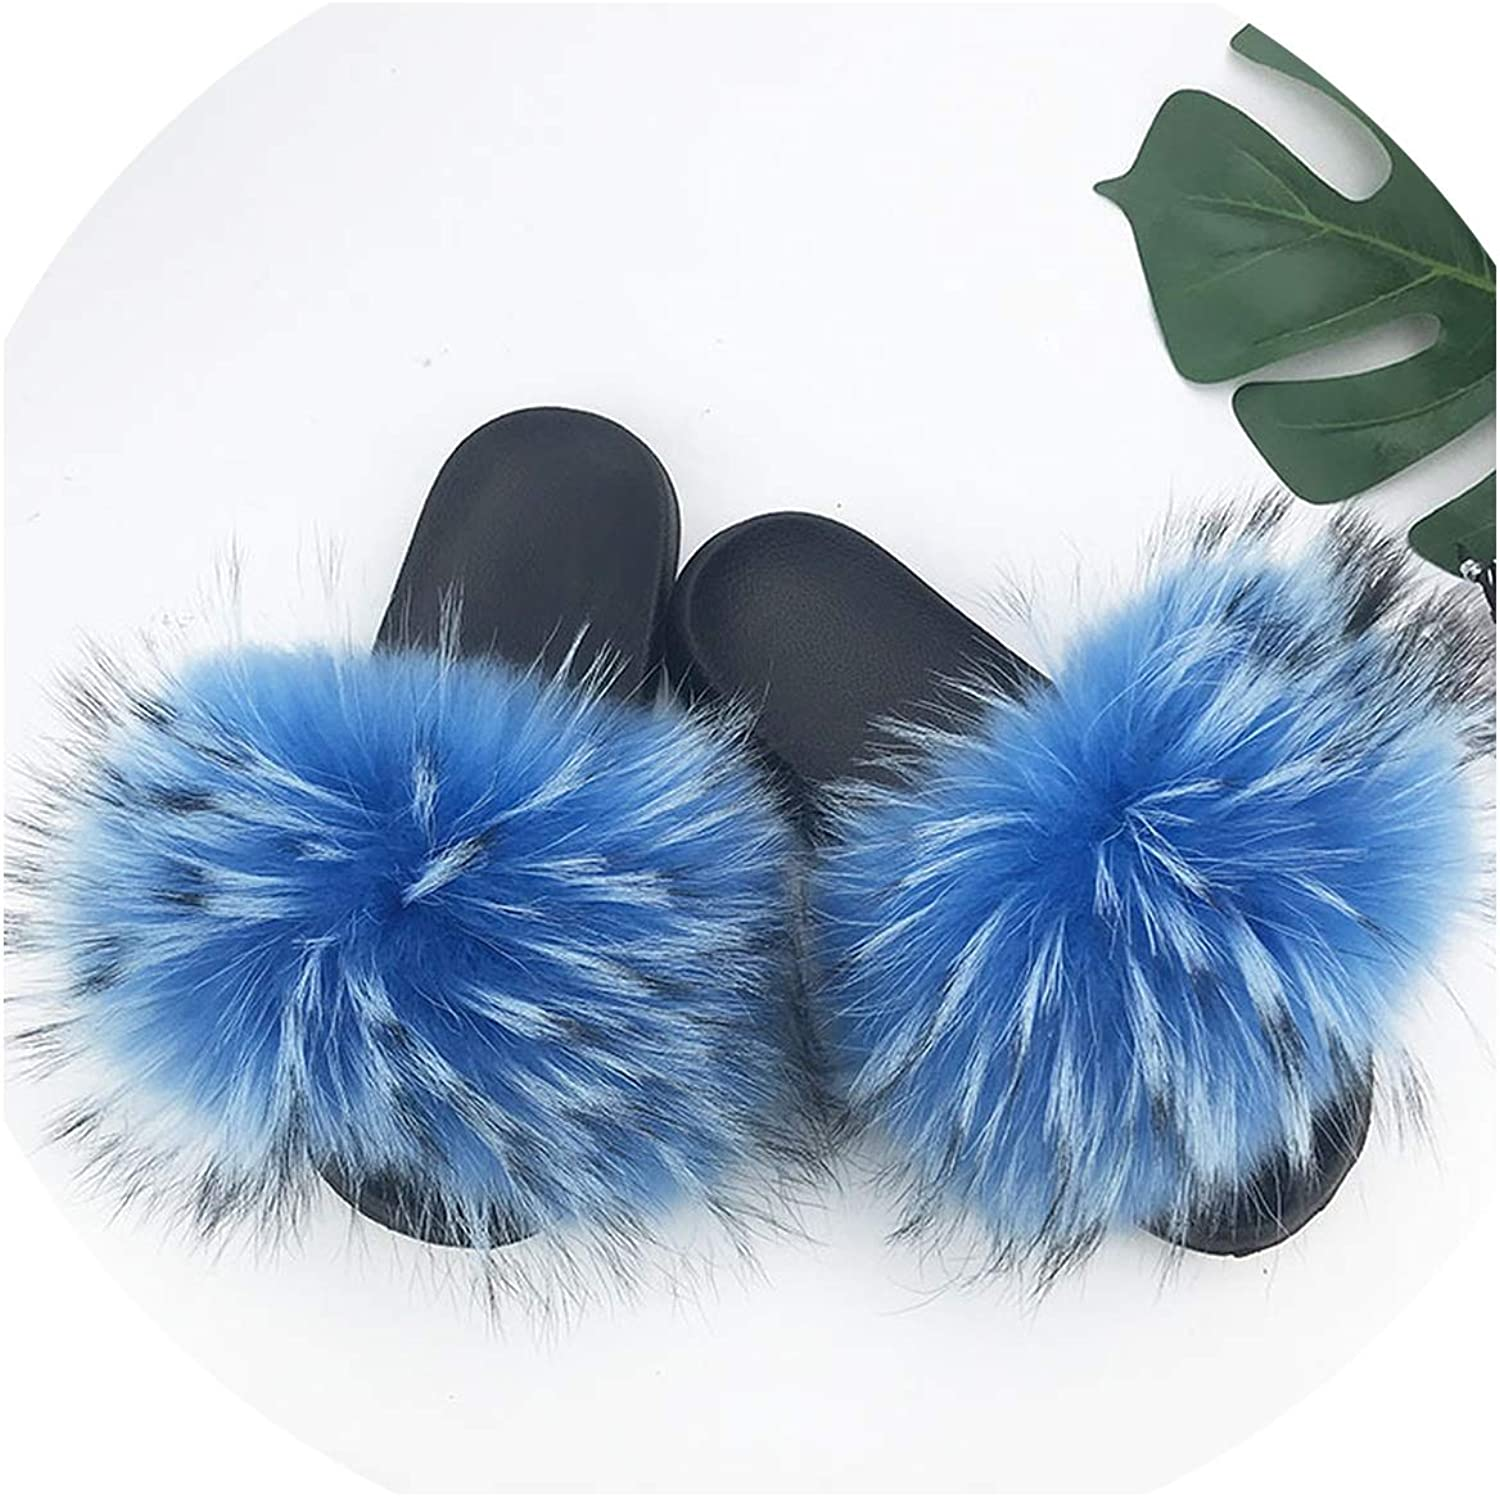 Just XiaoZhouZhou 28 colors Real Fur Slippers Women Fox Fluffy Sliders Comfort with Feathers Furry Summer Flats Sweet Ladies shoes Plus Size 36-45,4,7.5